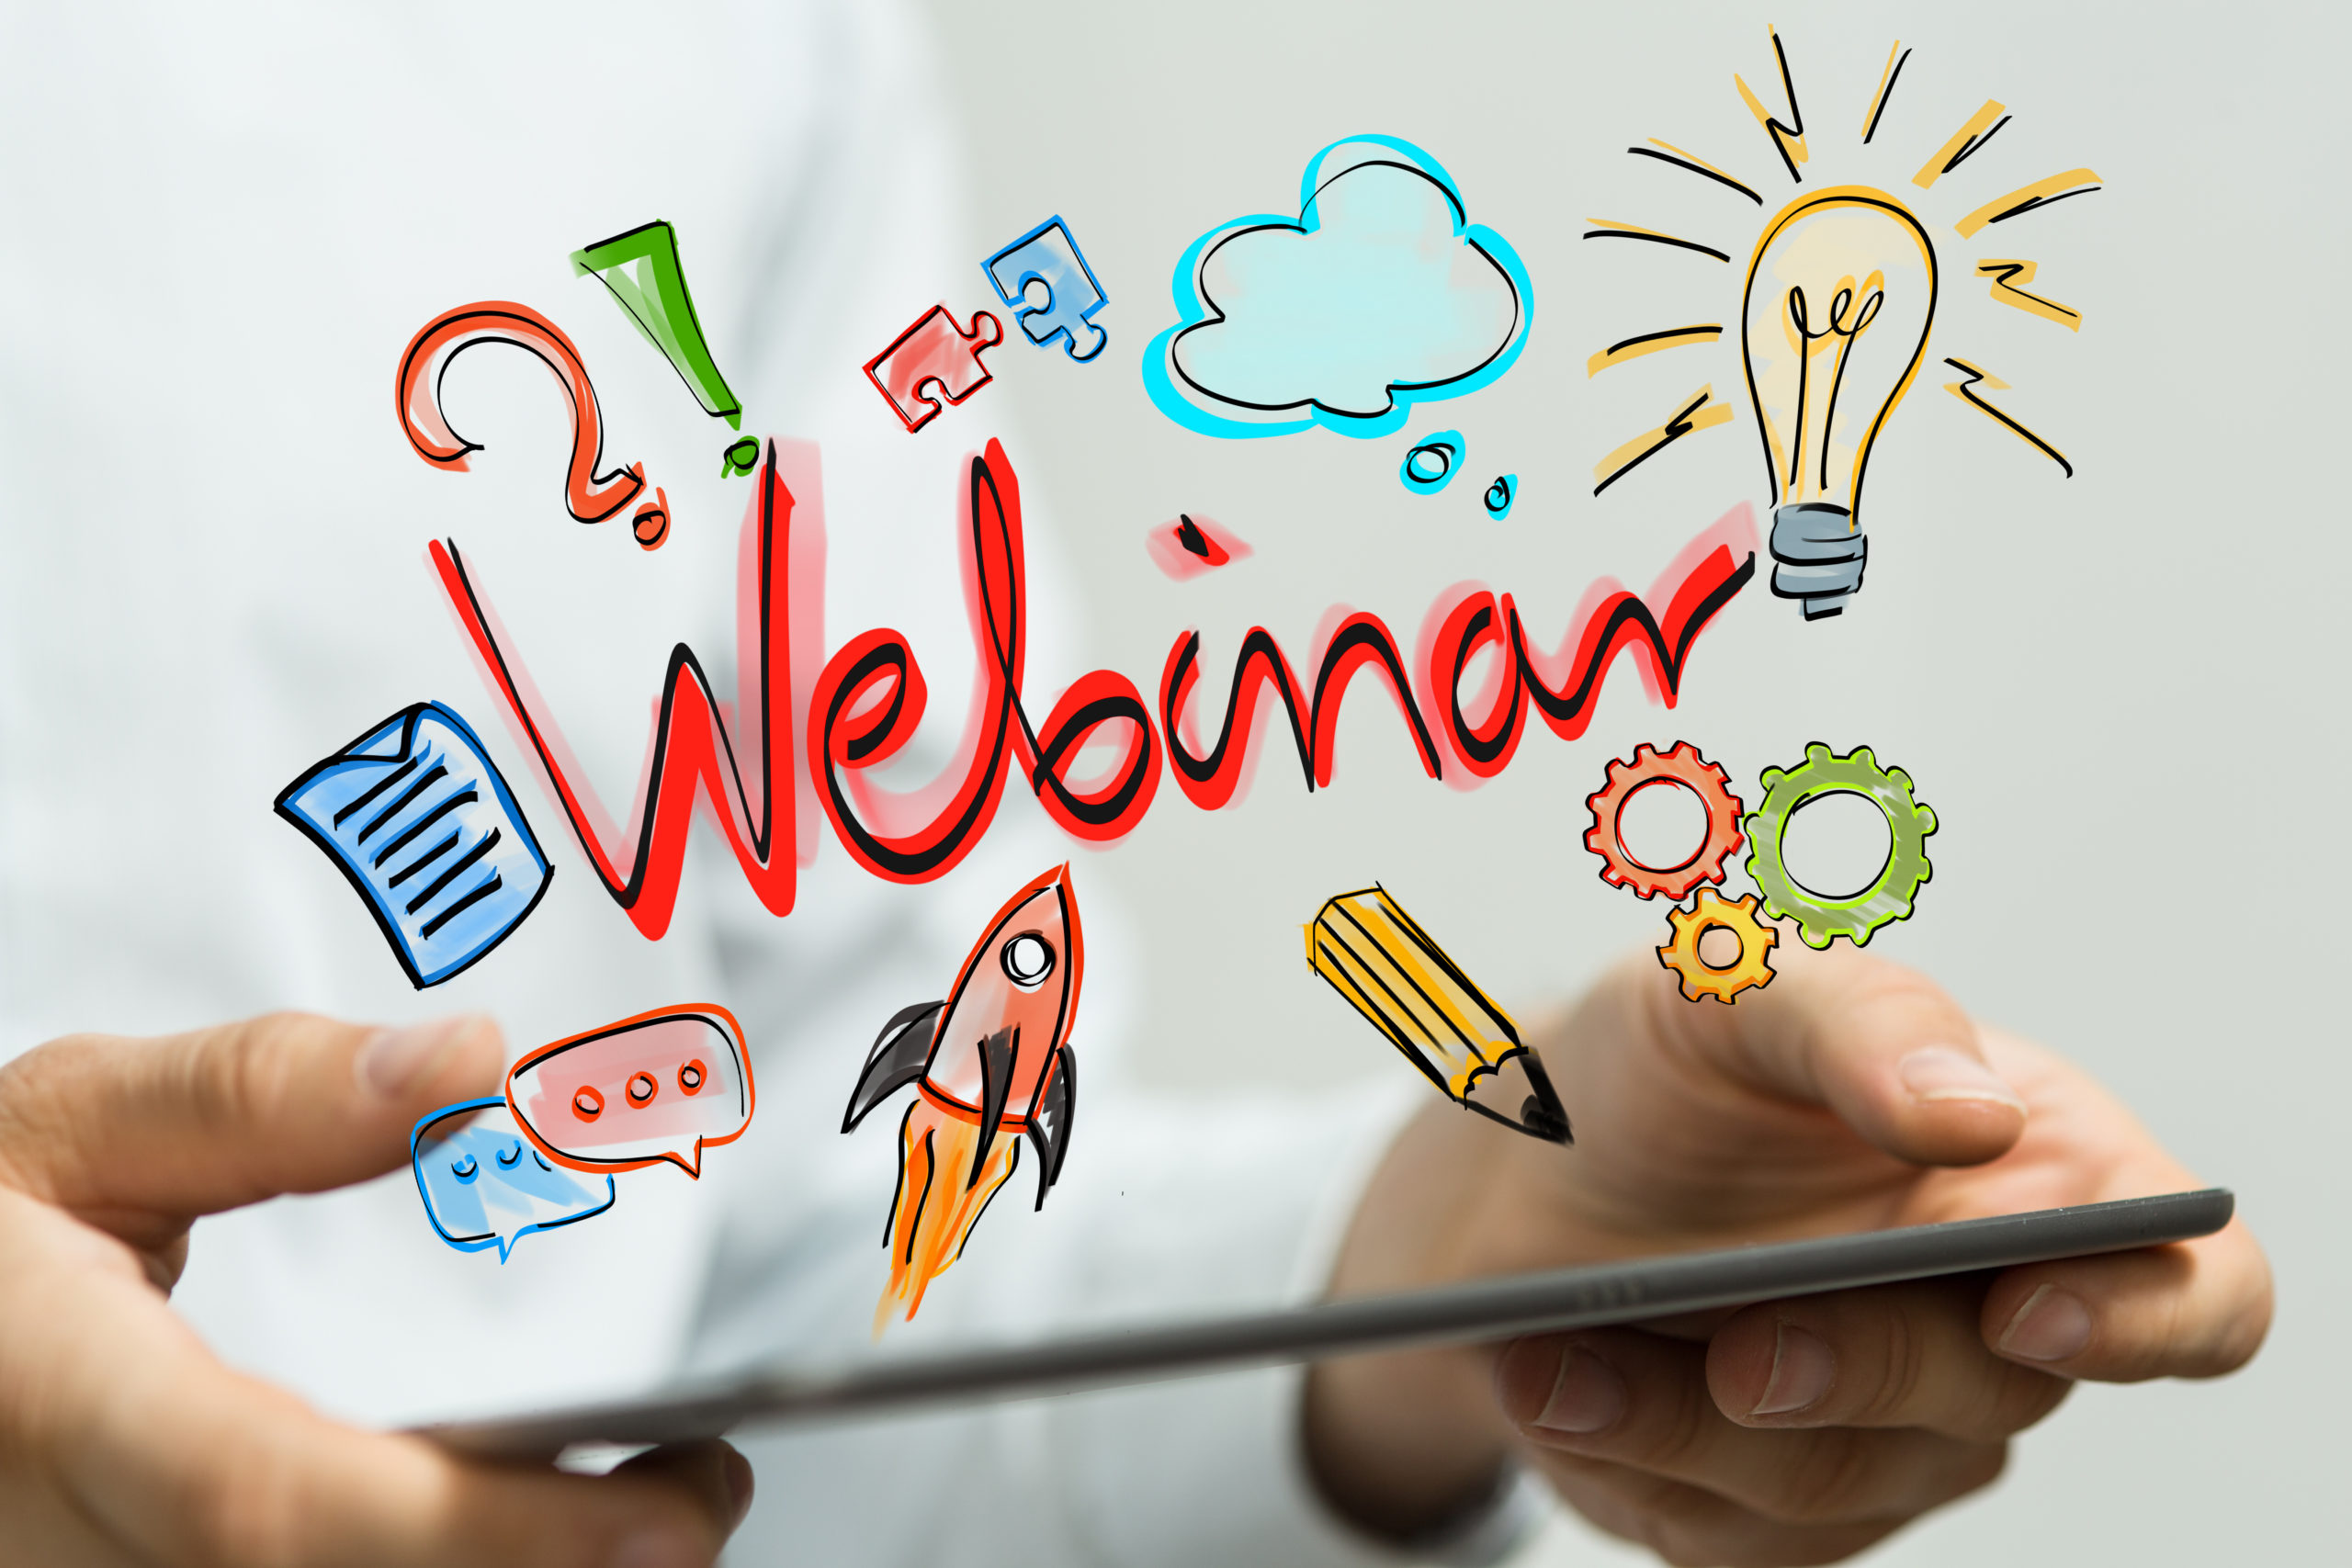 GRATIS-WEBINAR <br>5 Schritte zum Ausbildungsbetrieb